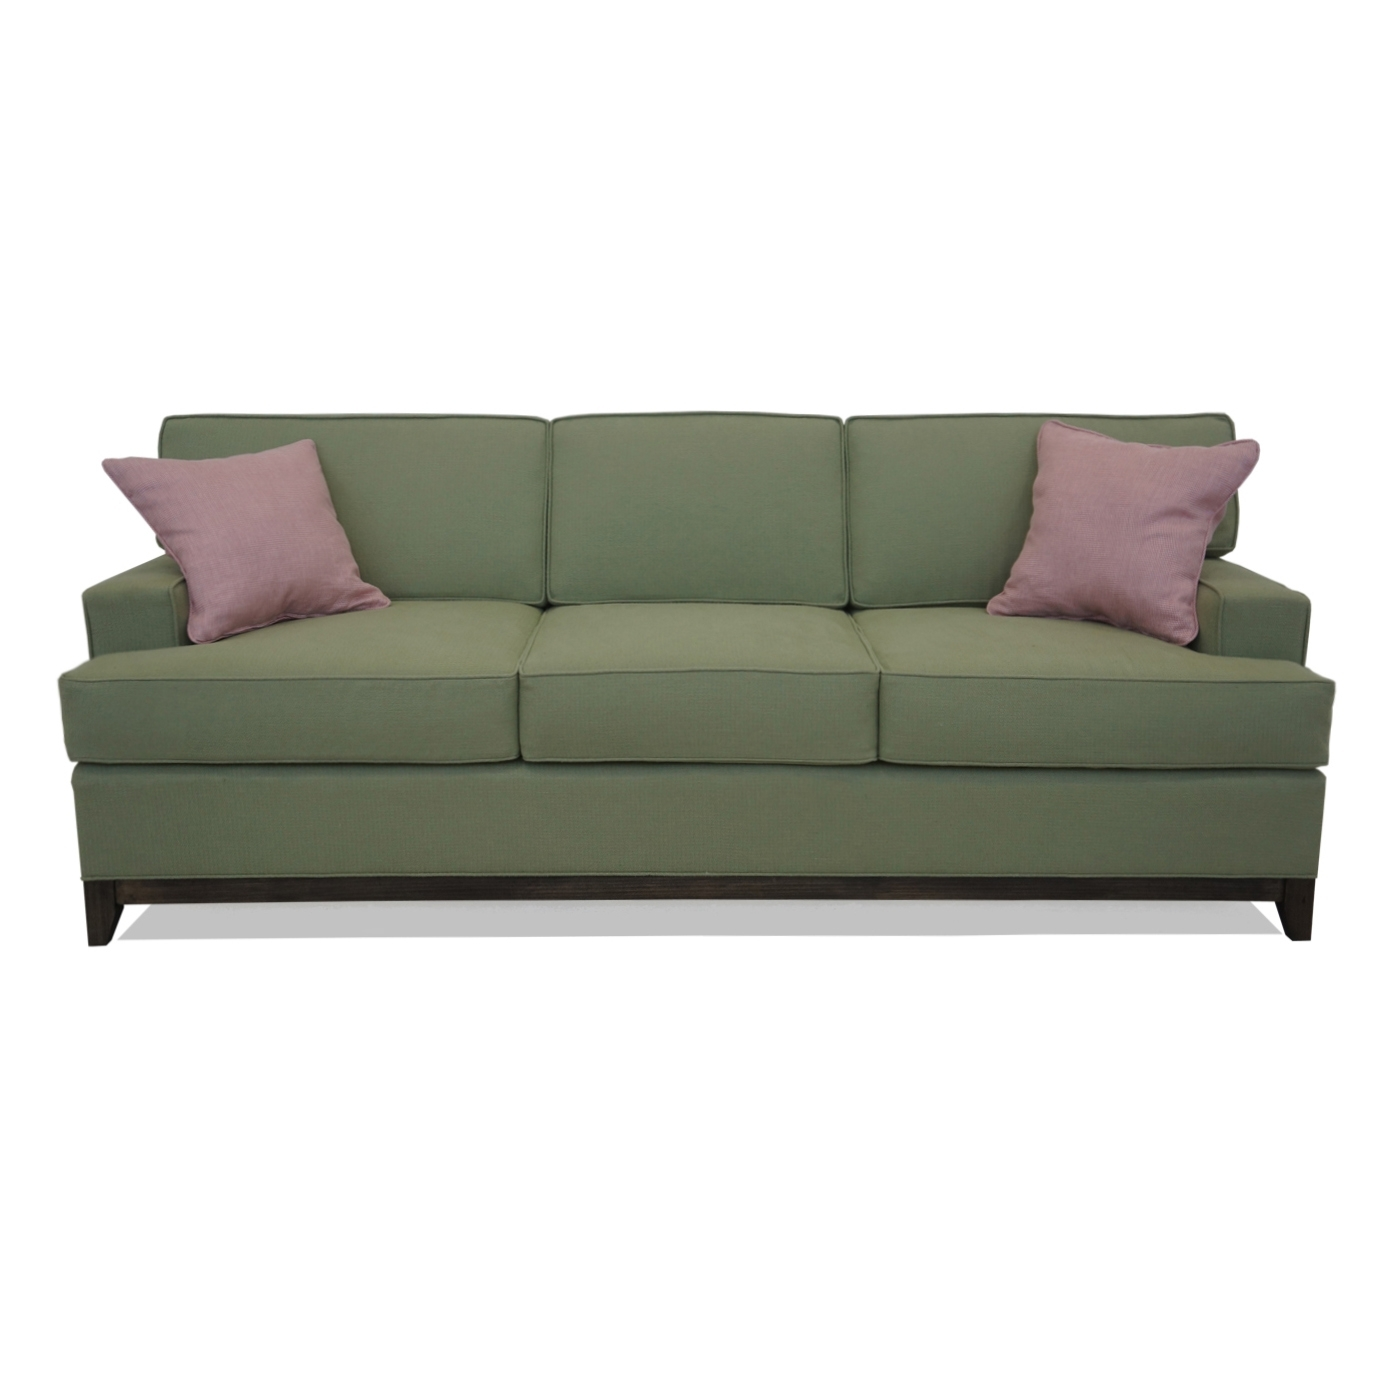 Favorite Eco Friendly Sectional Sofas With Regard To The Best Places To Shop For Eco Friendly Furniture (View 10 of 15)